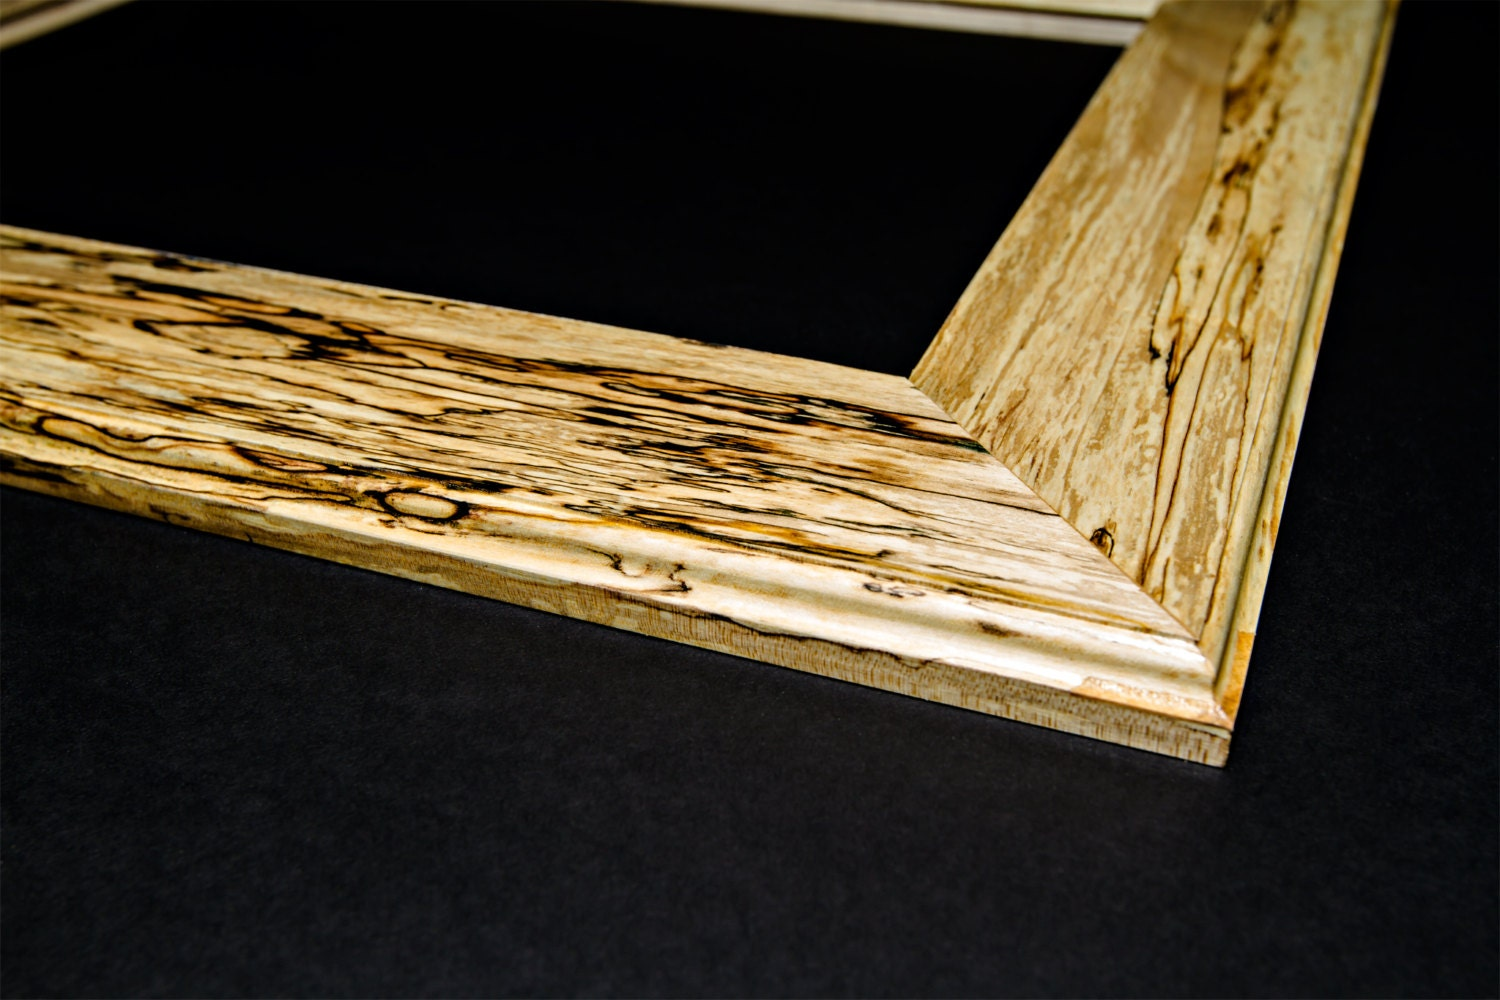 Vintage hancrafted reclaimed spalted maple picture frames hardwood sold by dovetailartistry jeuxipadfo Image collections